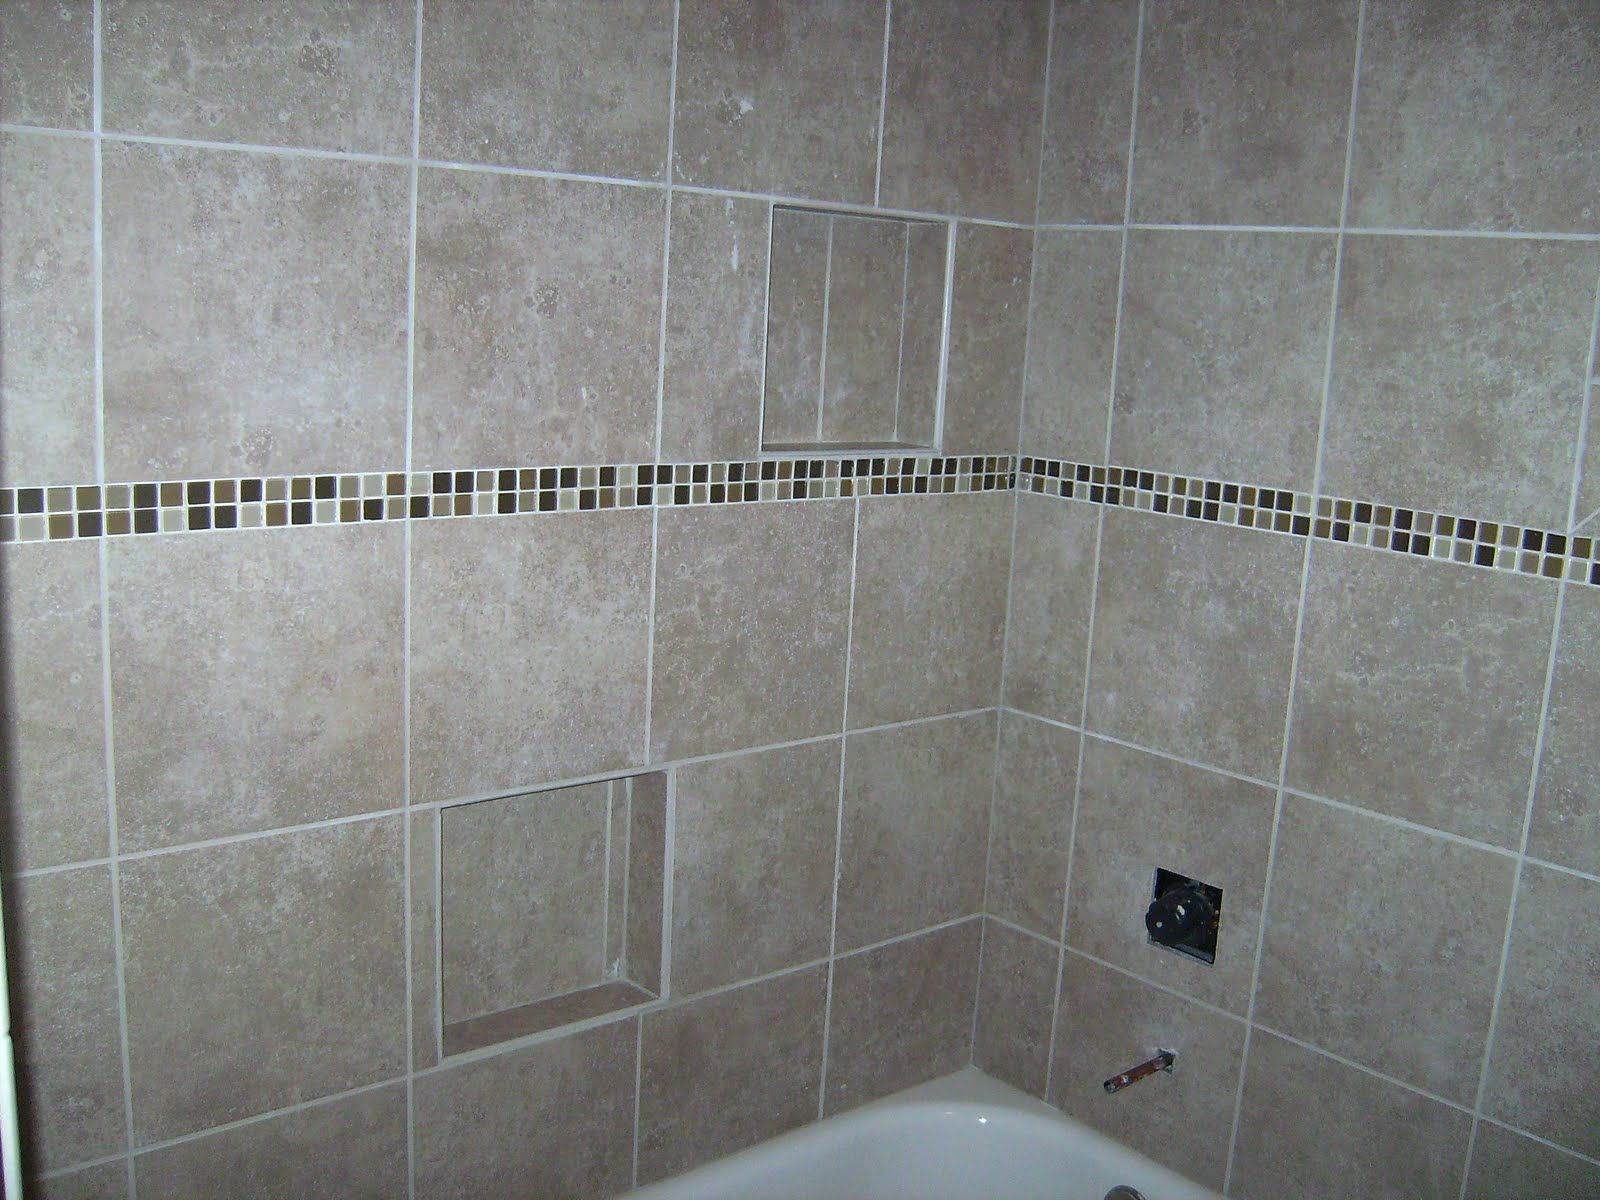 Knapp Tile And Flooring Inc Bathroom Walls And Tub Surround